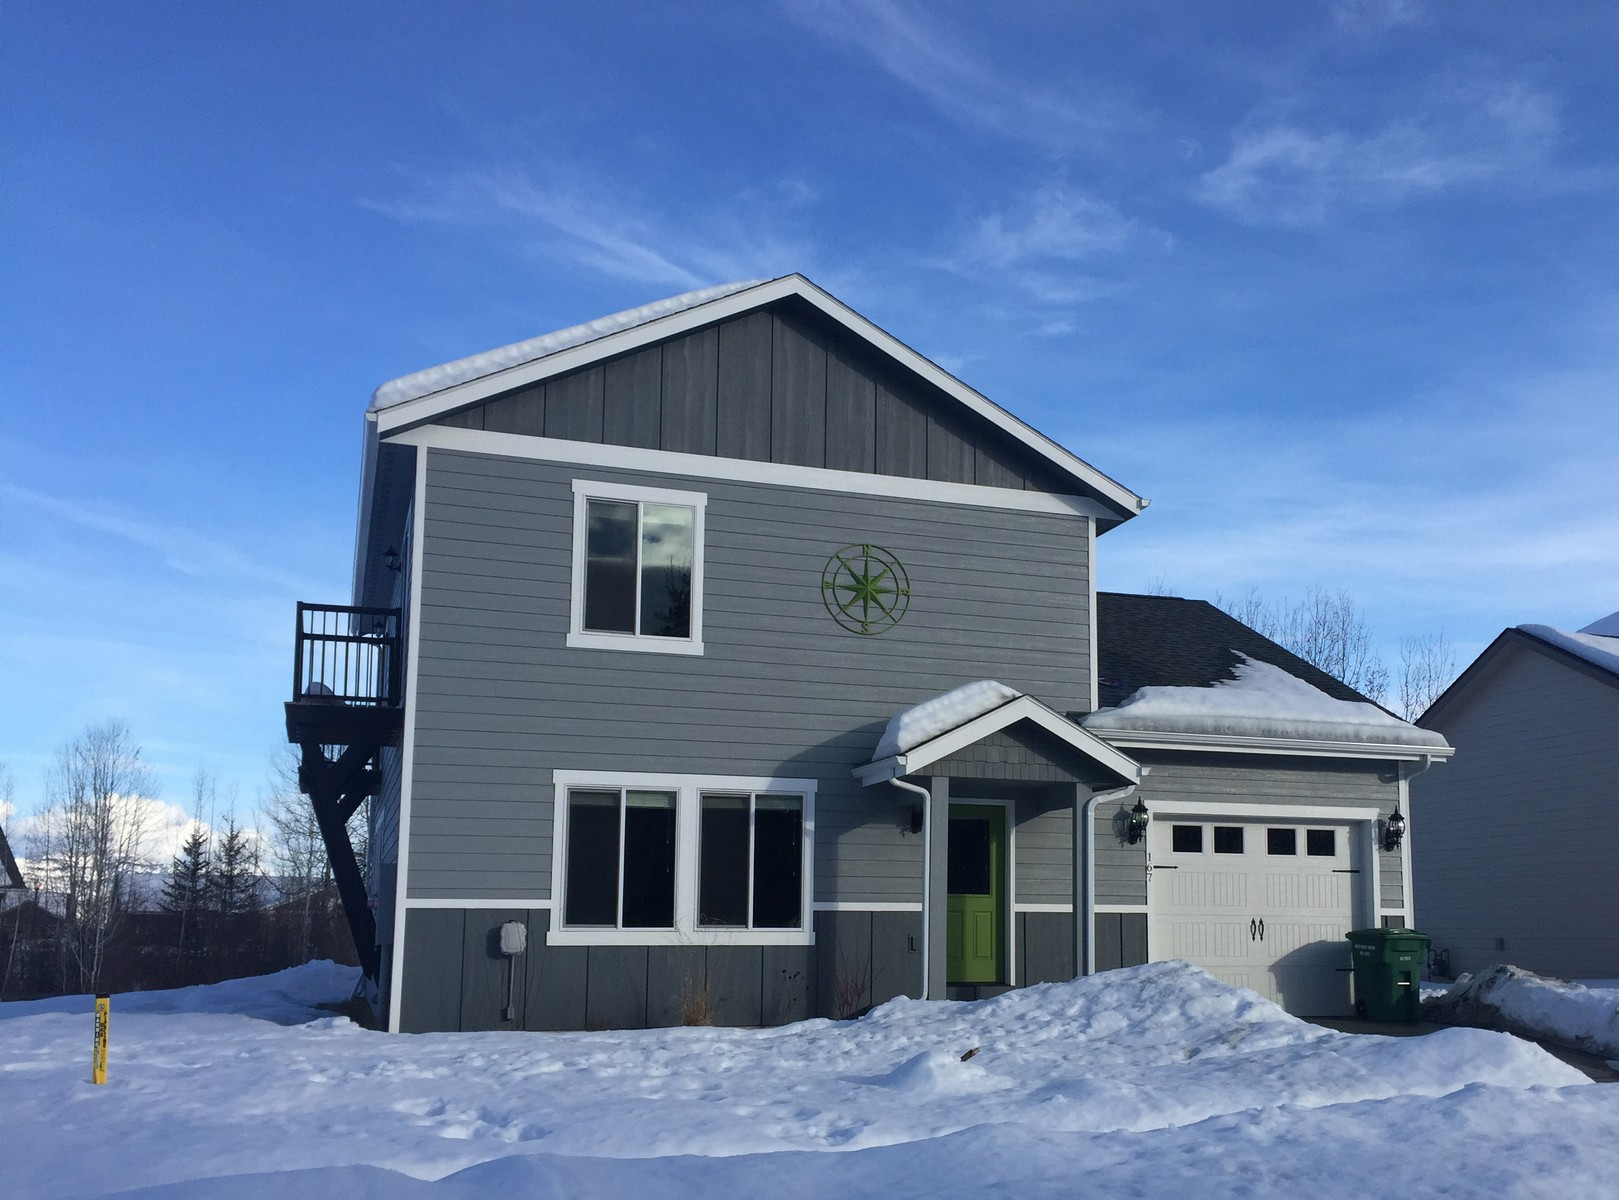 Single Family Home for Sale at 167 Brimstone Dr , Whitefish, MT 59937 167 Brimstone Dr Whitefish, Montana 59937 United States